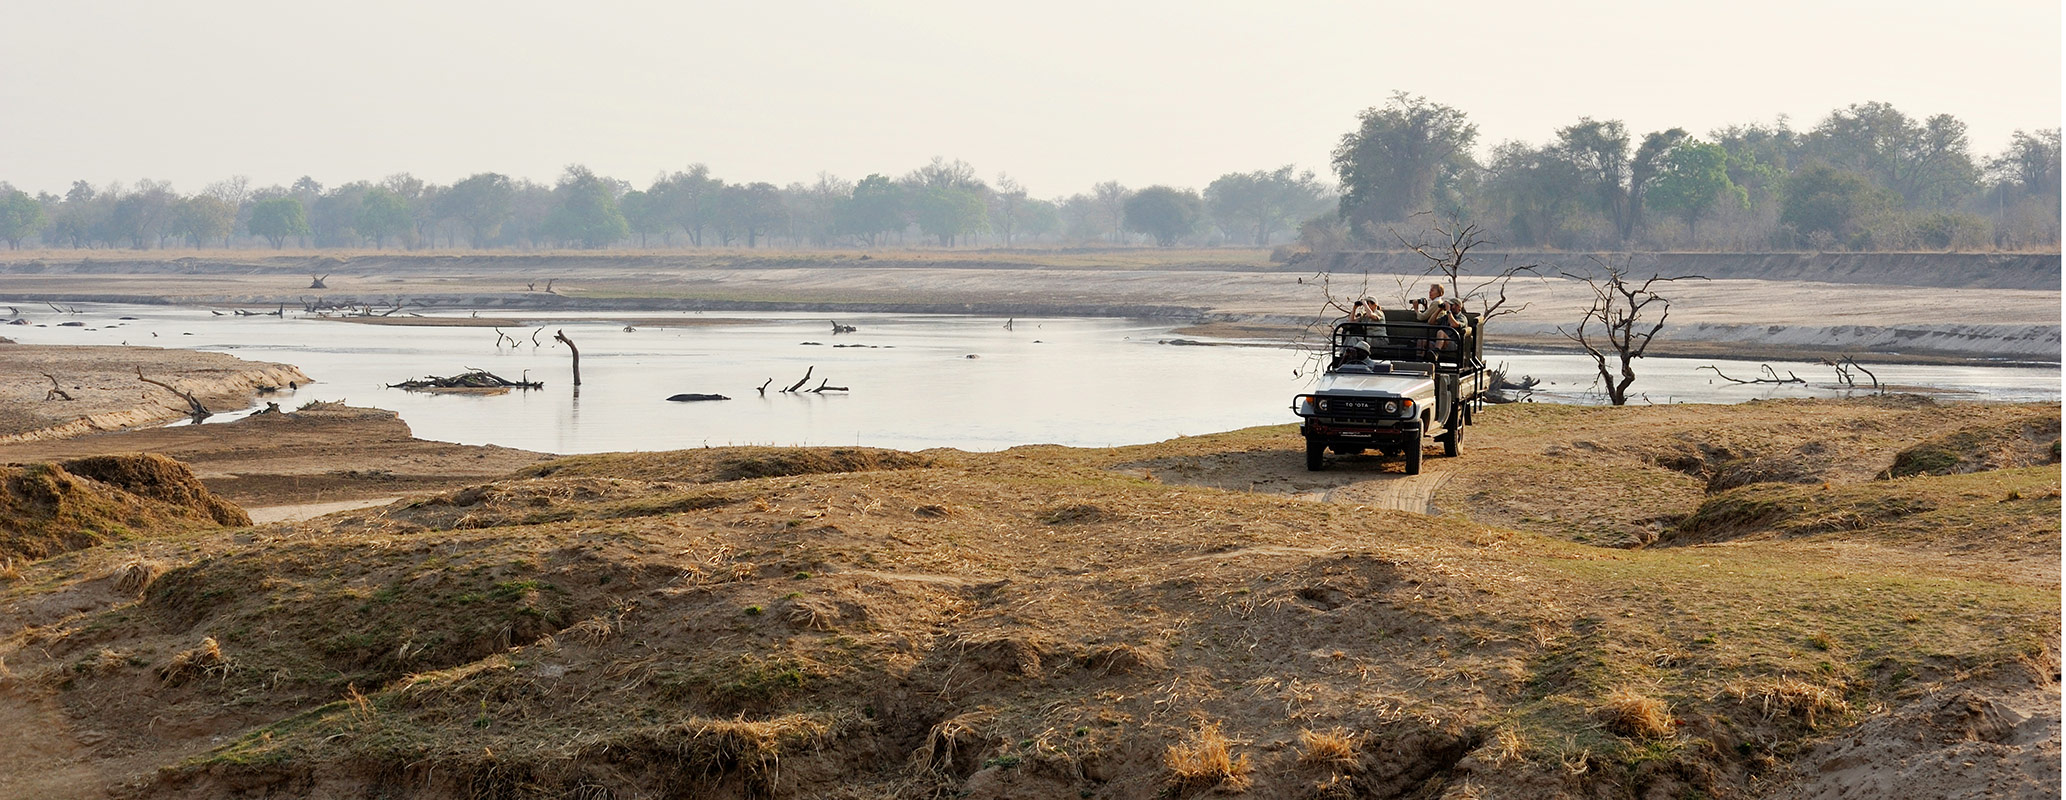 Remote Africa Safaris guests on a game drive past the Luangwa river in Zambia